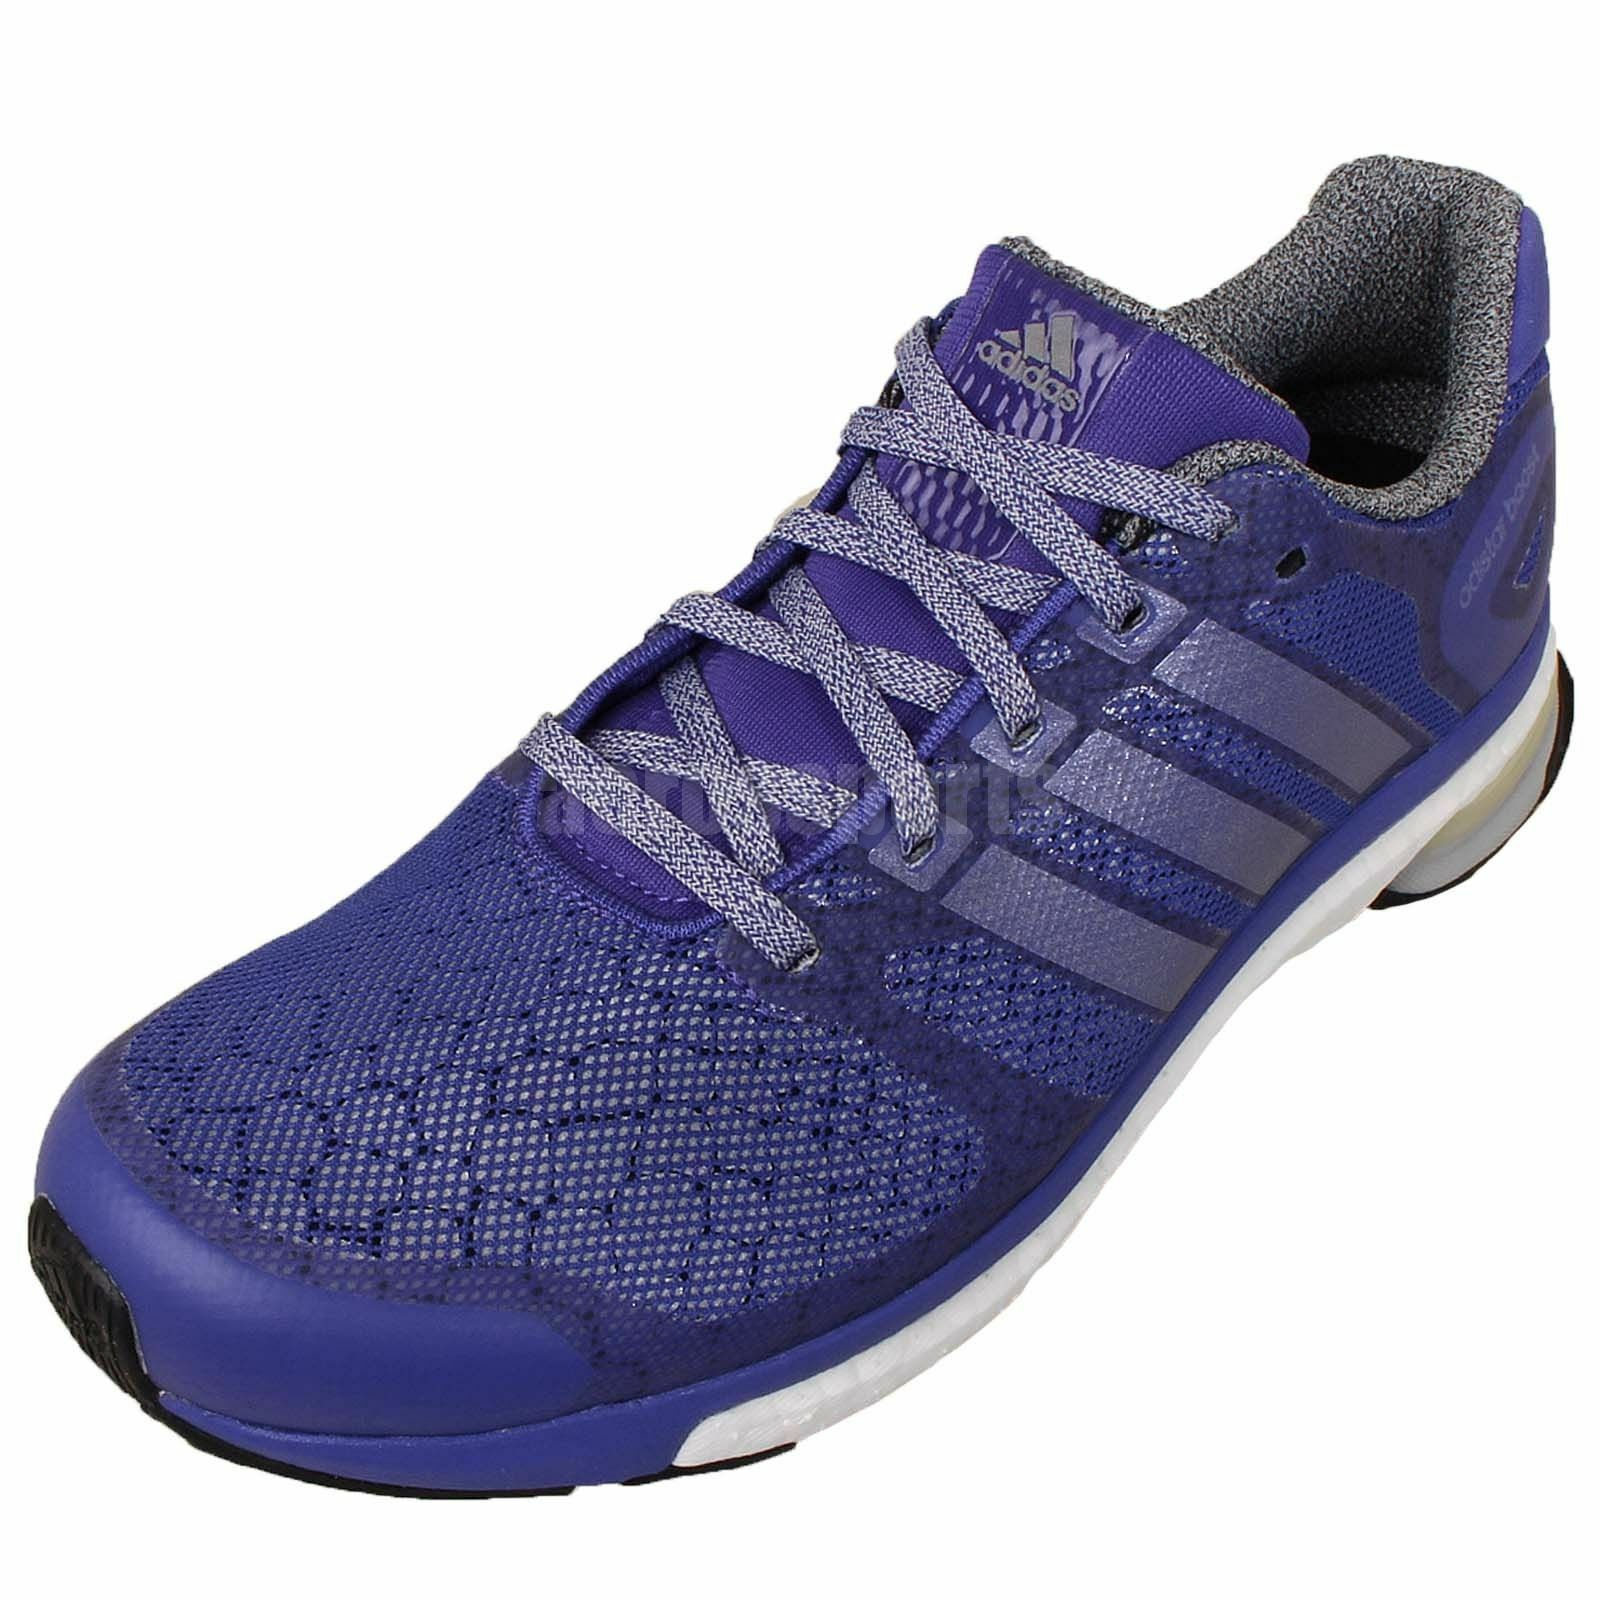 Adidas NWB Adistar Boost Glow Womens6.5 bluee Sneakers Running shoes888164881709